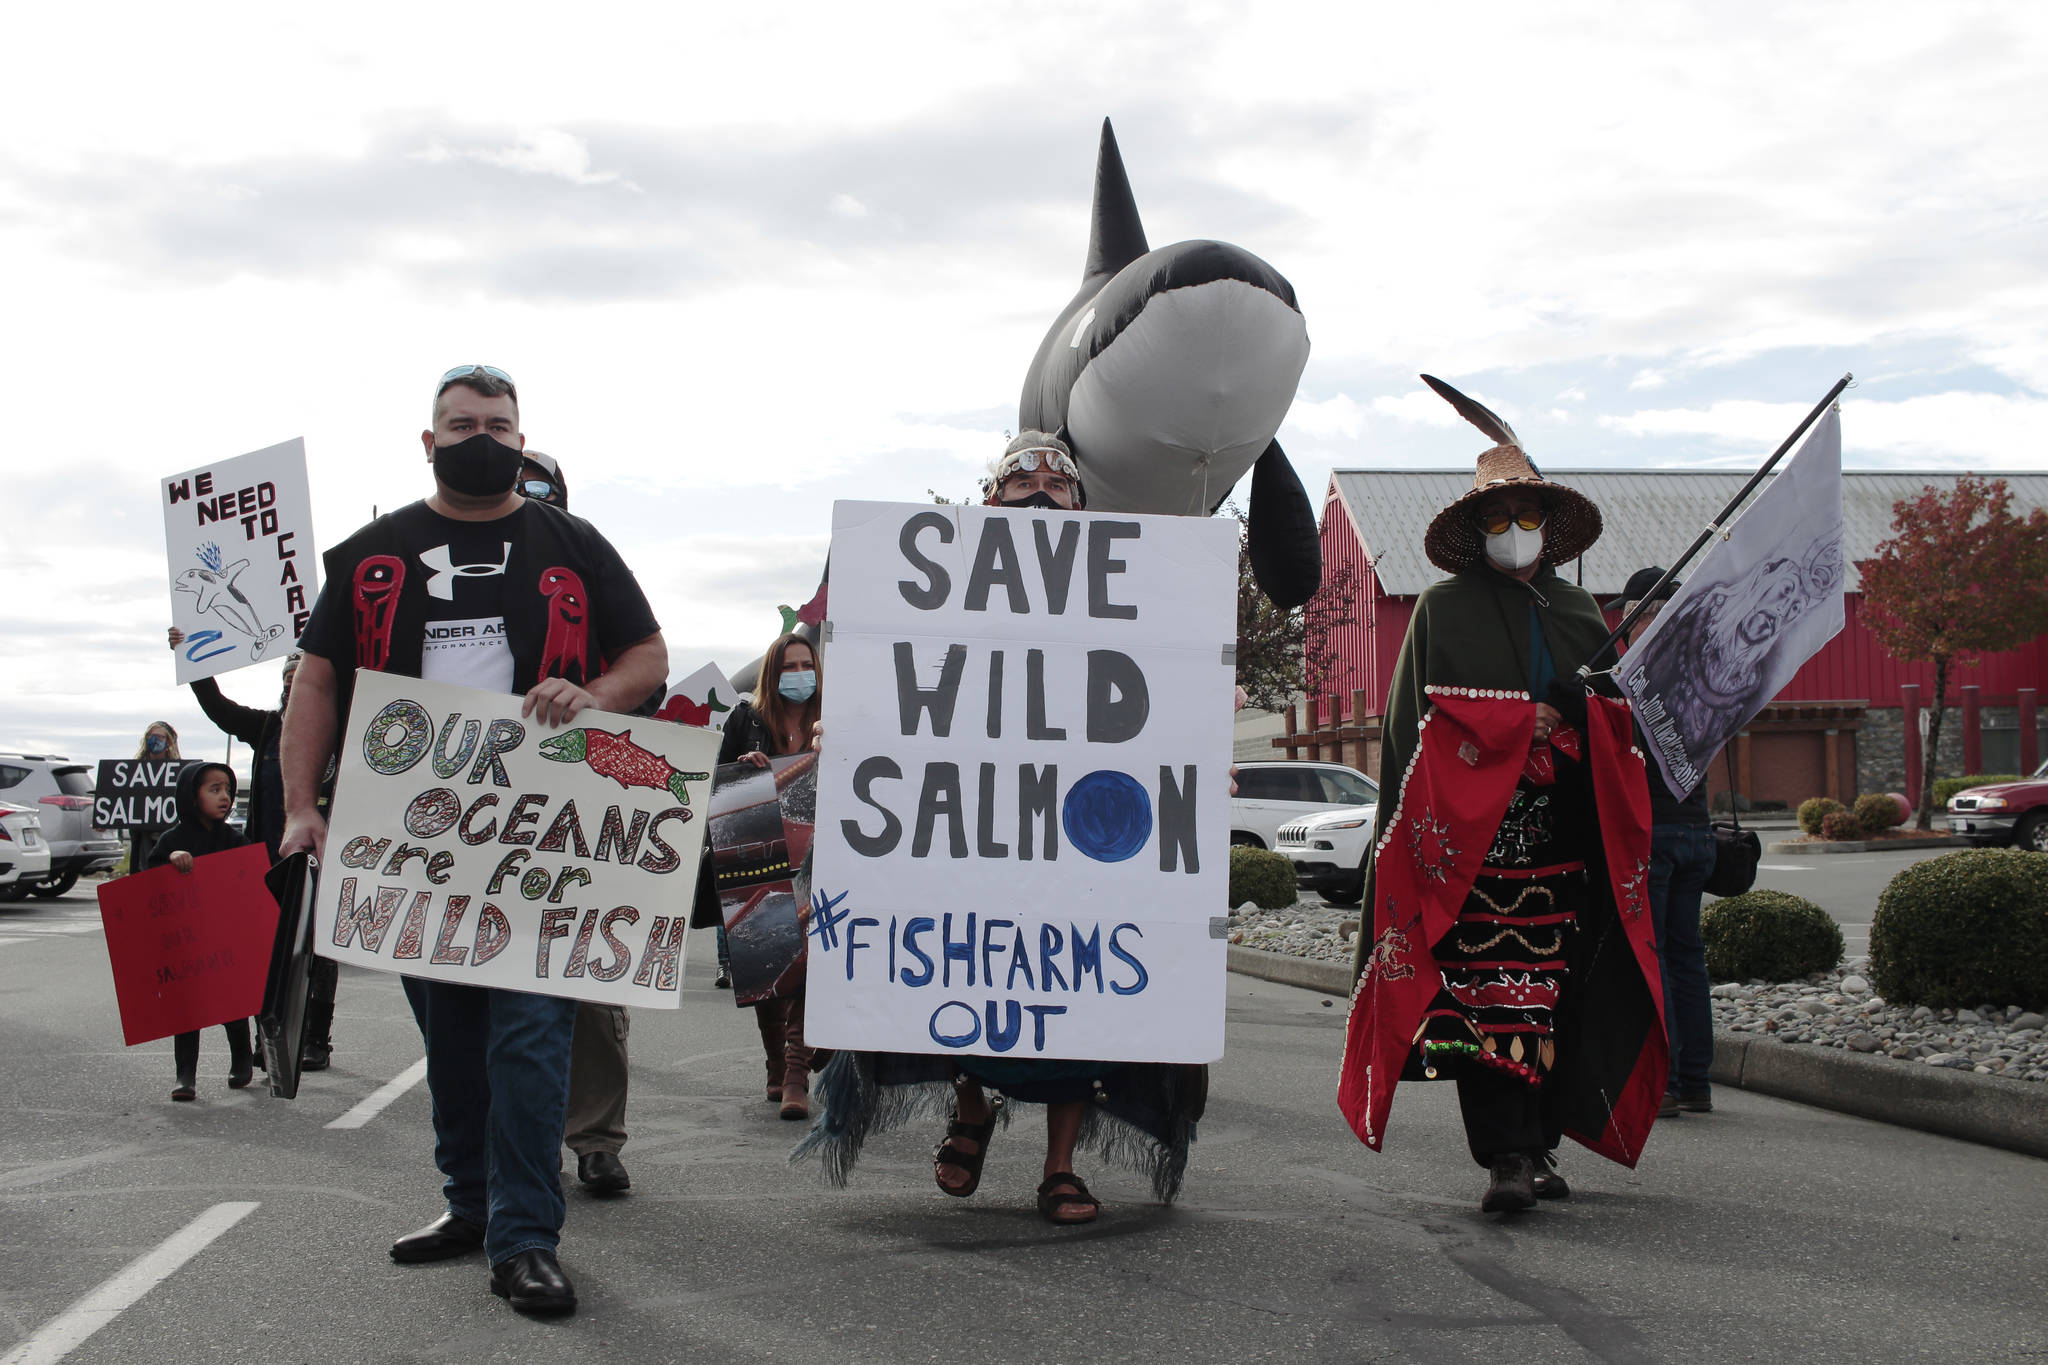 """""""It is a representation of multiple issues that came up in 2020, First Nations sovereignty for resources in the Discovery Islands, COVID-19, social issues and the environment. This is especially poignant considering the recent decision on the Discovery Islands fish farms in question."""" (Marc Kitteringham/Campbell River Mirror)"""